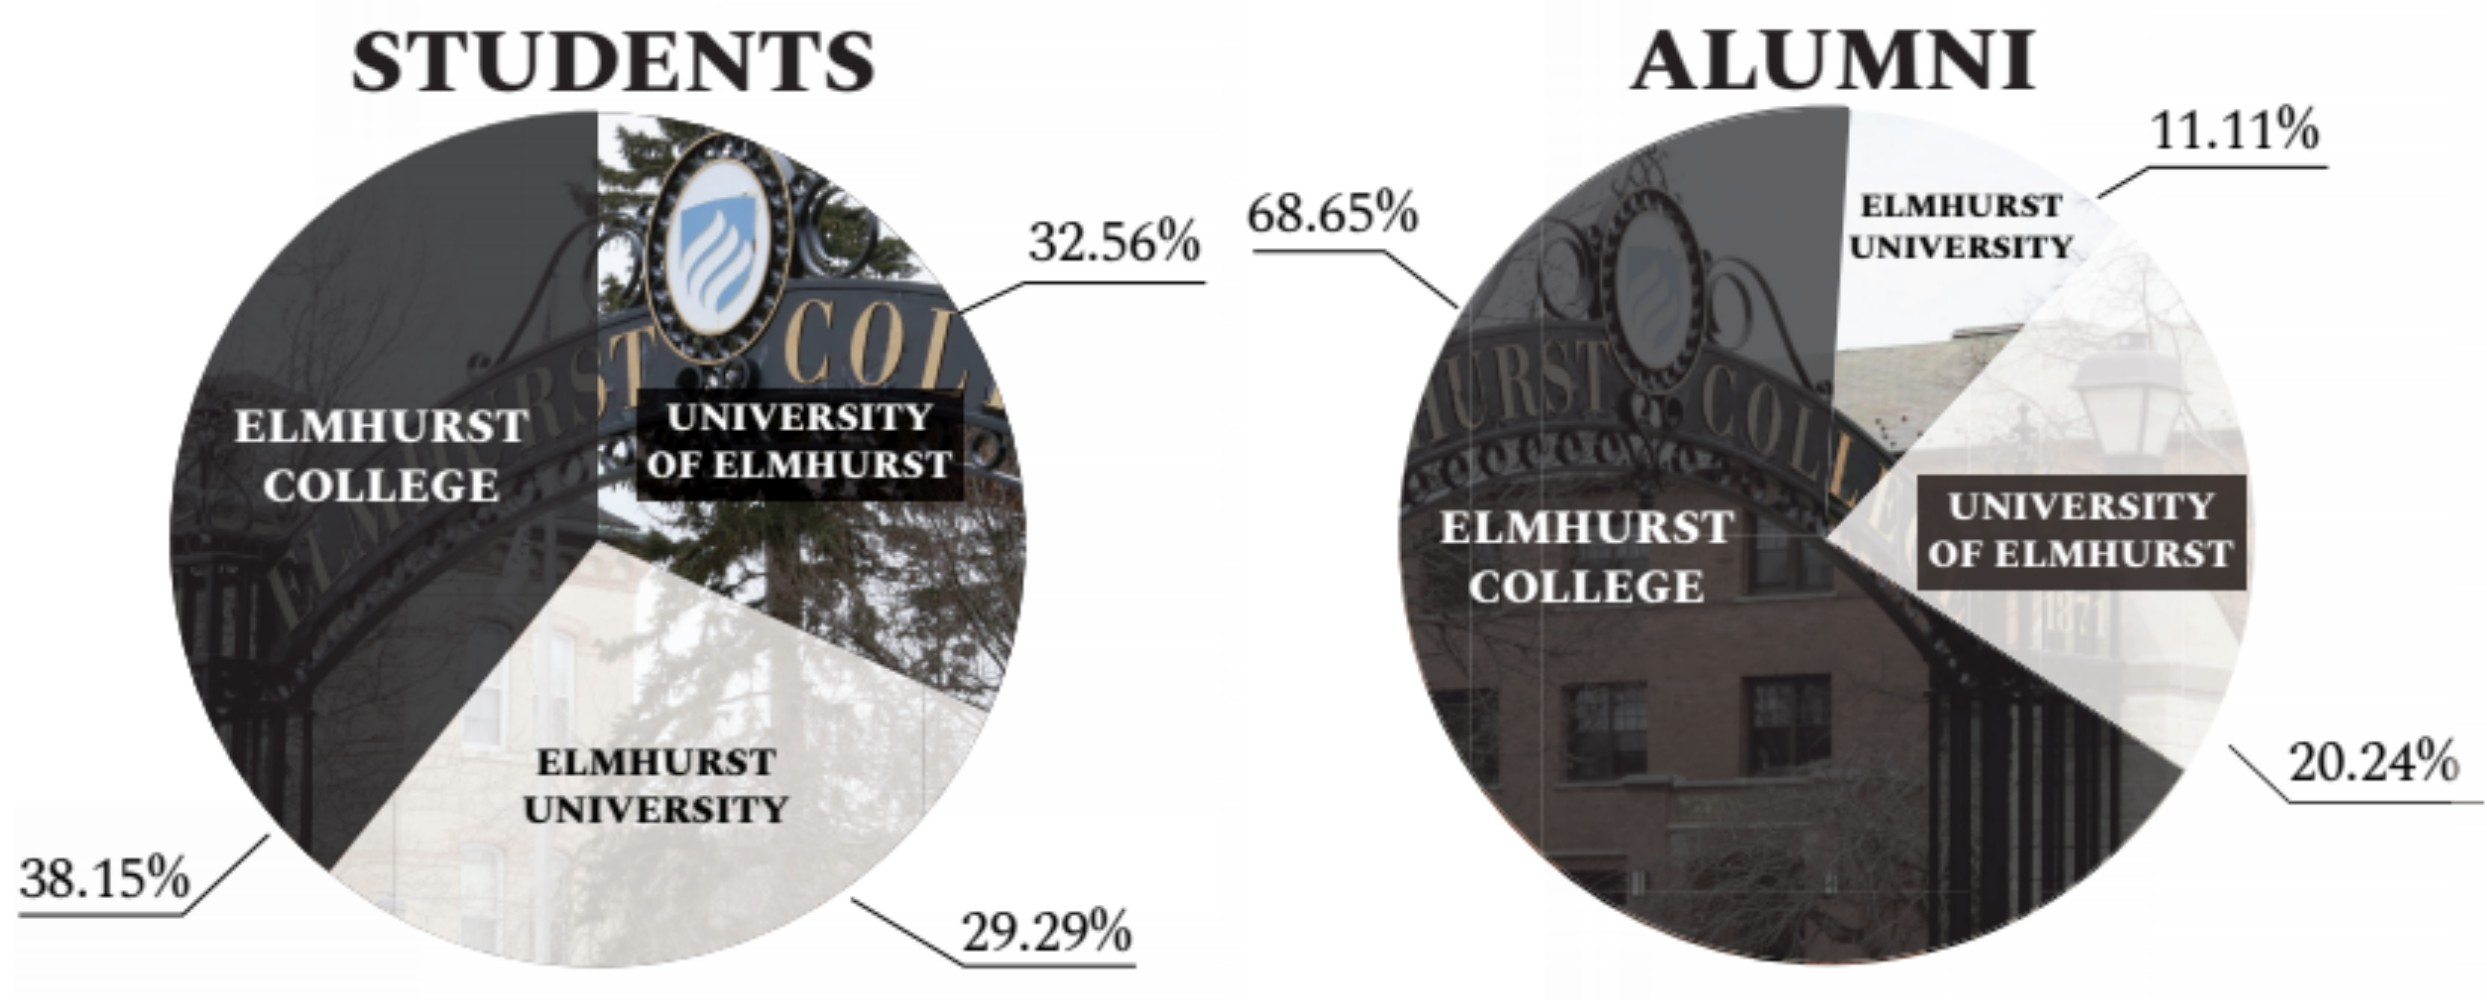 Results from The Leader's survey showing student and alumni's thoughts about whether to keep Elmhurst College's name or to change it to University of Elmhurst or Elmhurst University . The survey which received 1,024 responses was first given out on November 28, 2018 and closed on February 3, 2019.  Graphic by Julia Zawitkowska.